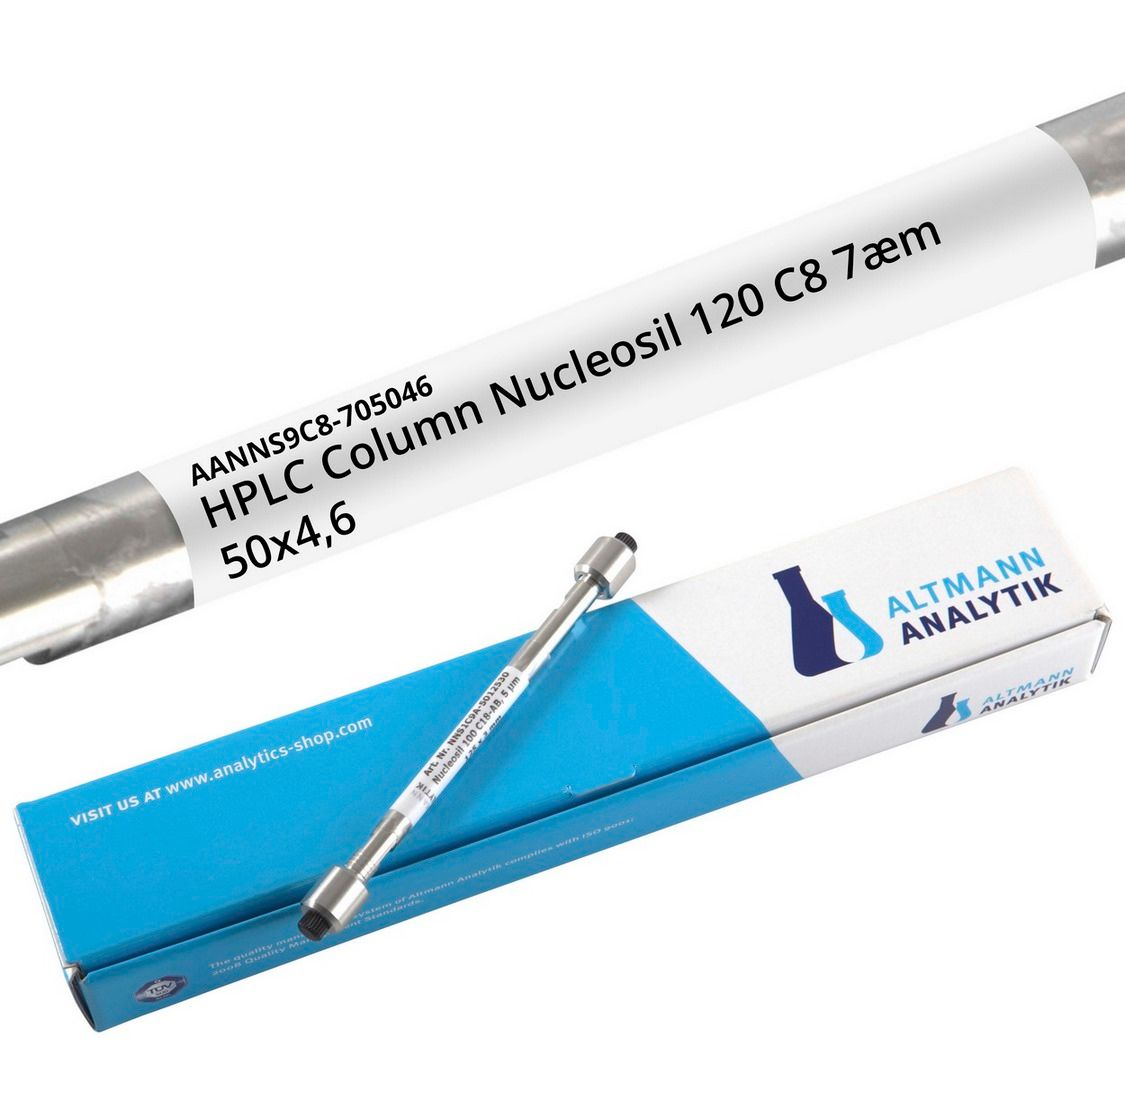 HPLC Column Nucleosil 120 C8 7µm 50x4,6 mm, 120A